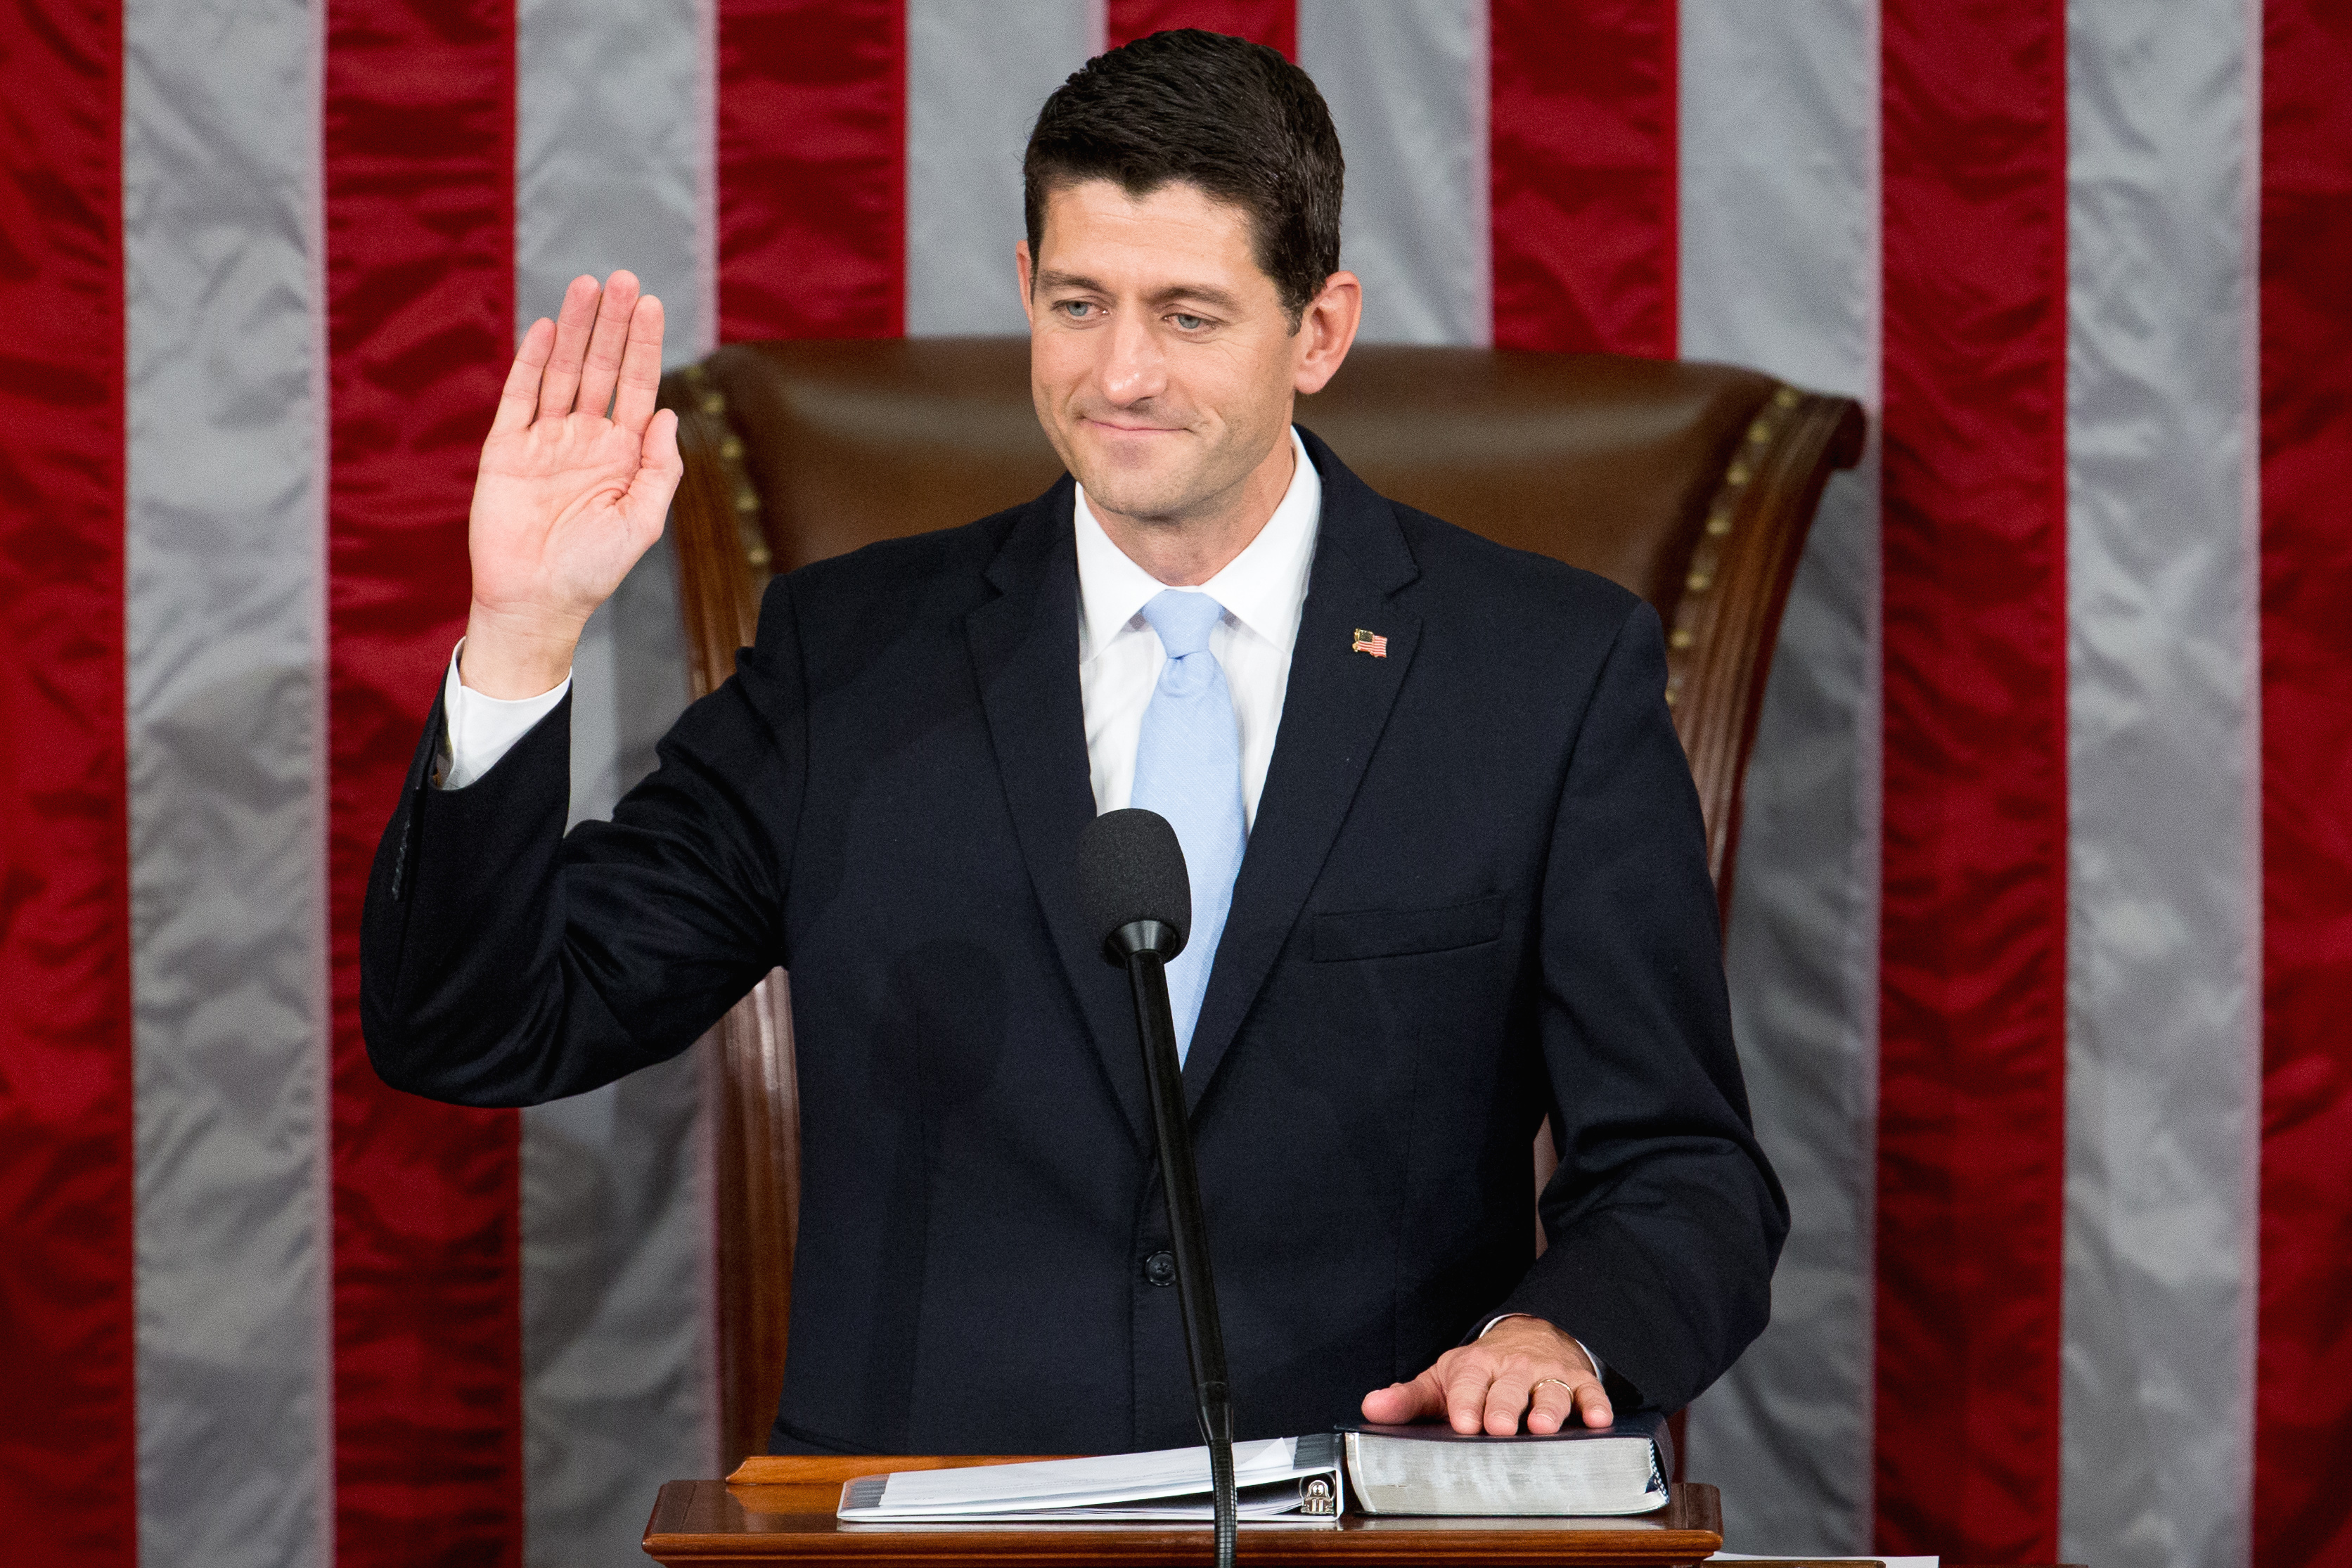 Newly elected House Speaker Paul Ryan of Wisconsin takes the oath of office in the House Chamber on Capitol Hill in Washington, Oct. 29, 2015.